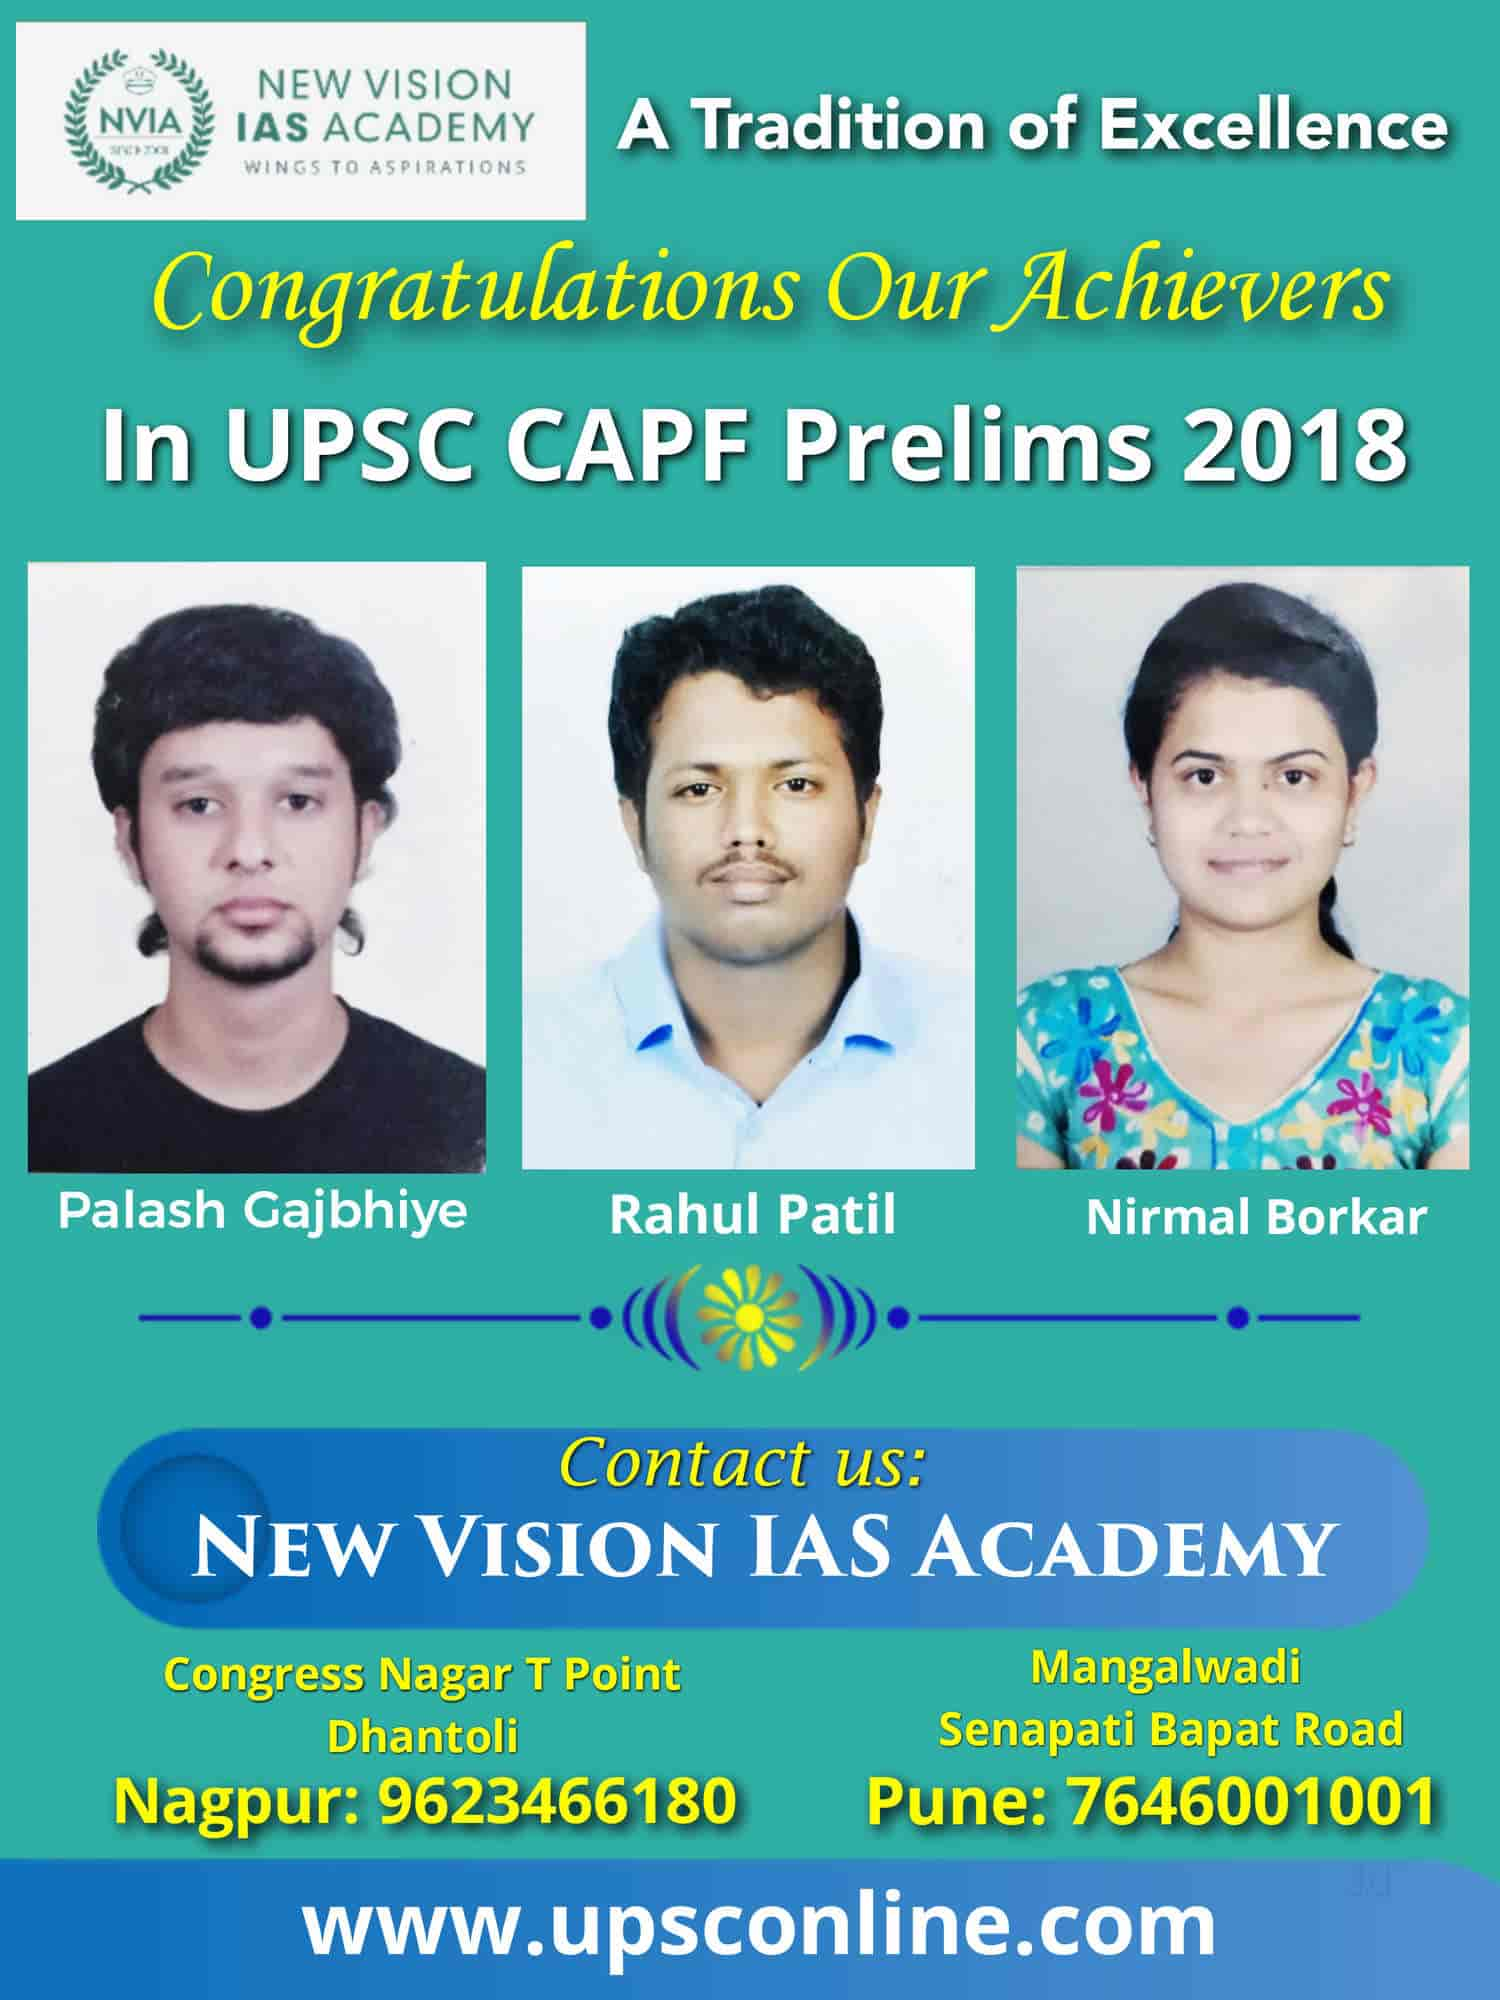 New Vision IAS Academy, Dhantoli - UPSC Tutorials in Nagpur